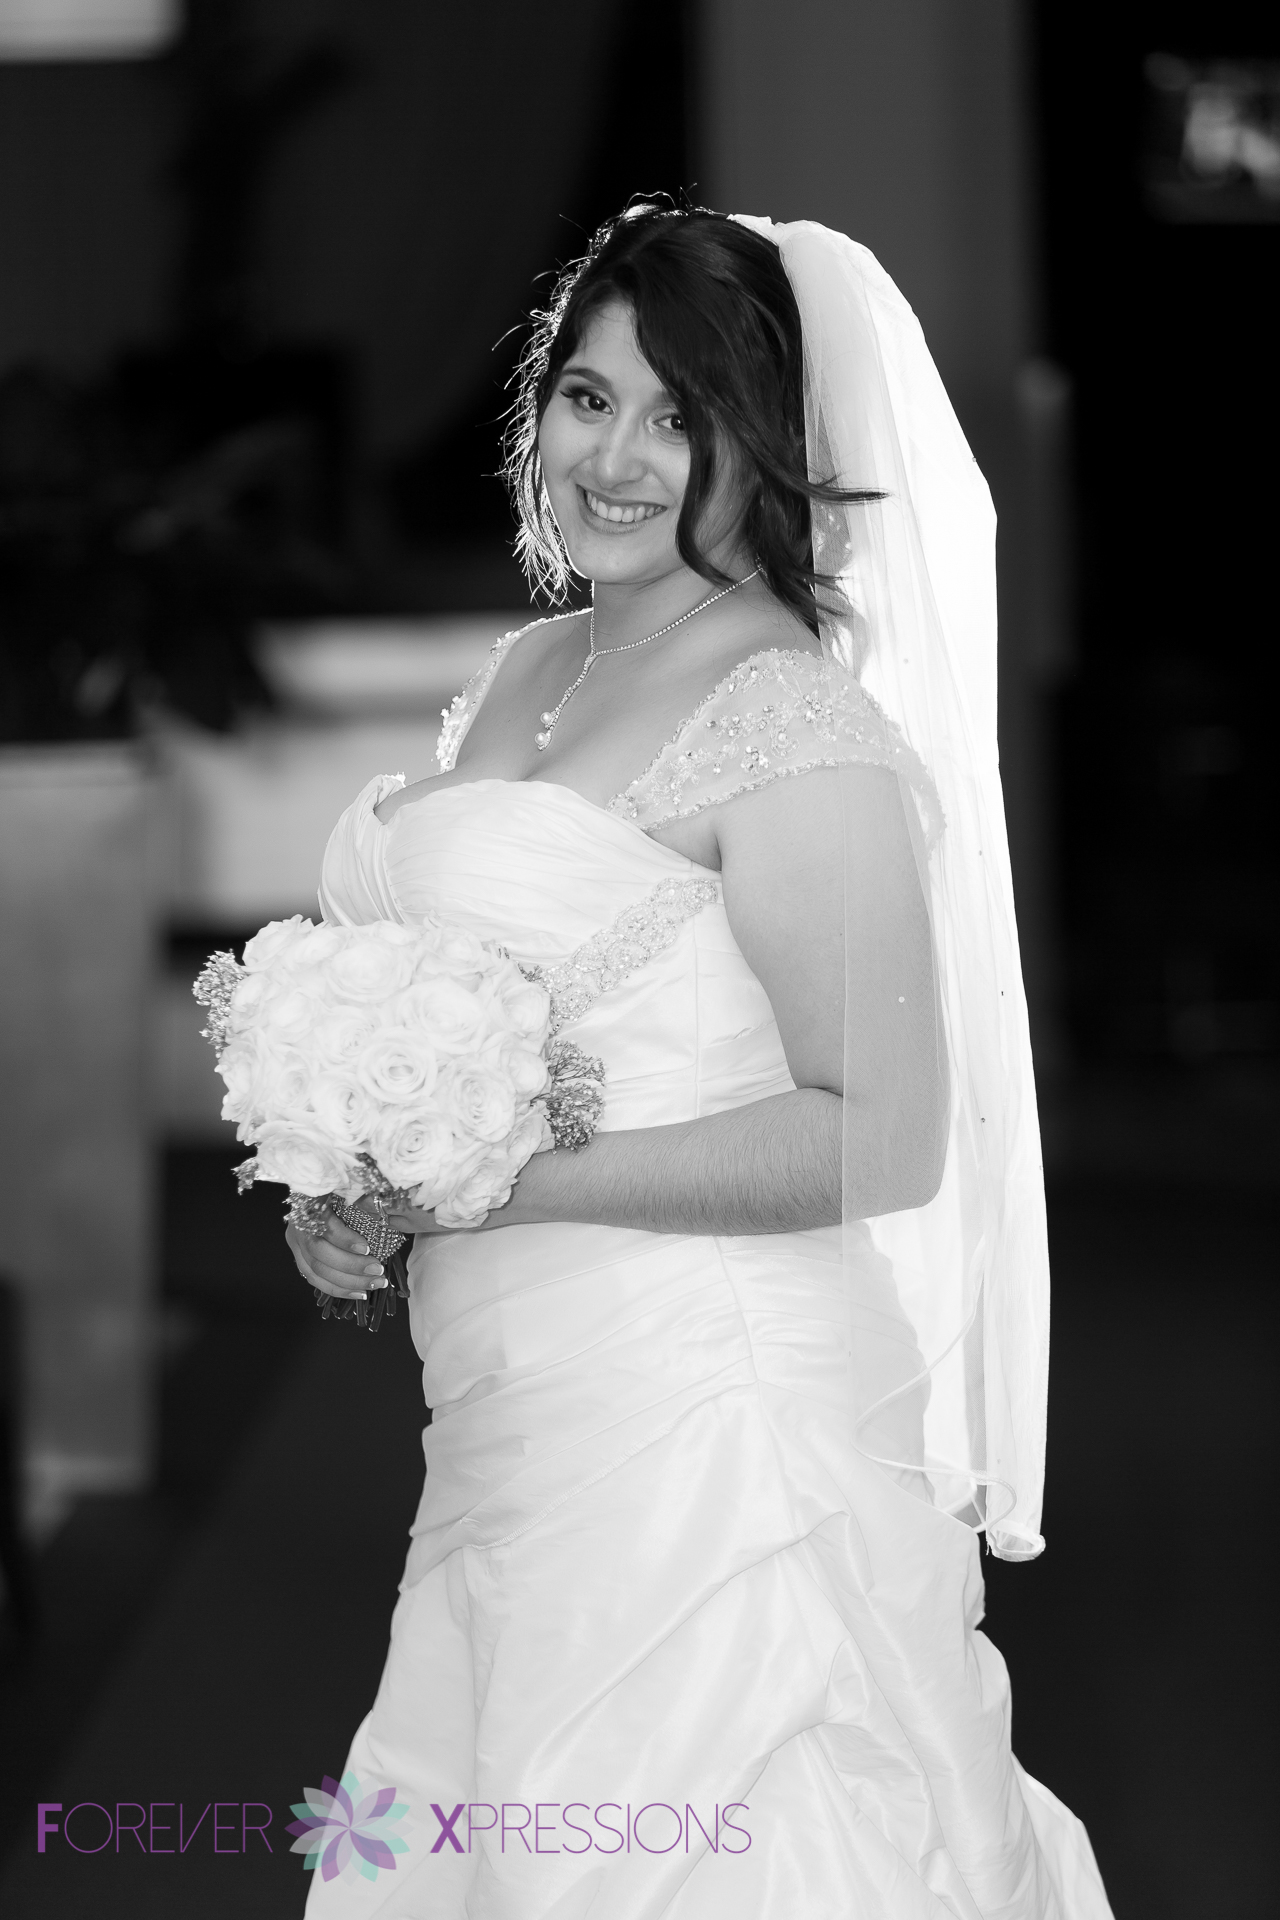 Forever_Xpressions_Wedding_Photography_Monteverde_Bella_Collina-0586